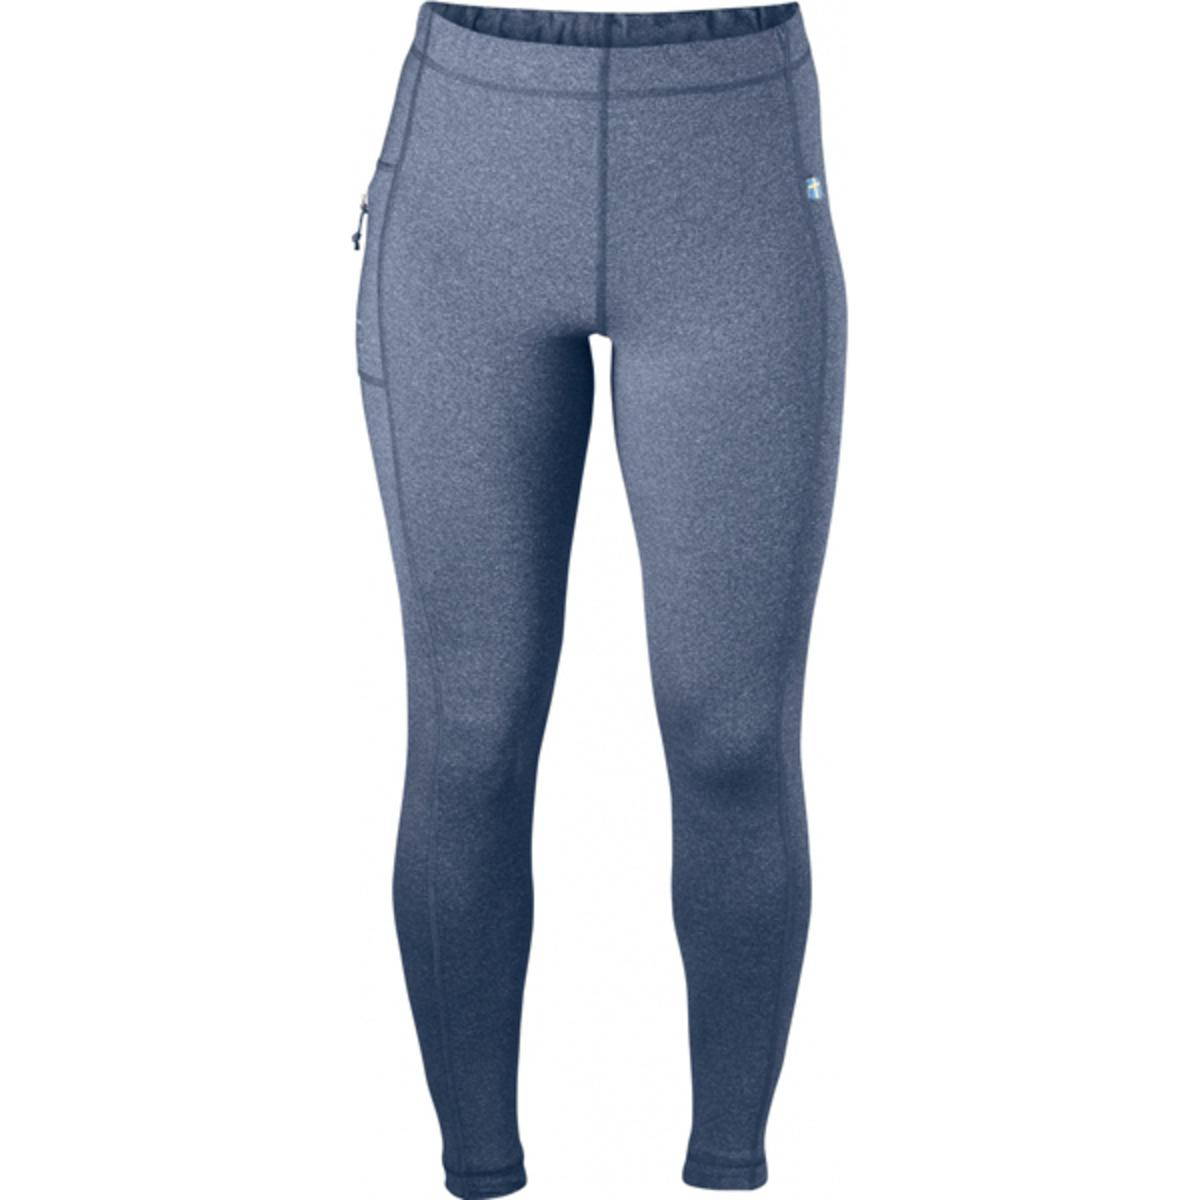 03061284be3c0 FjallRaven Women's High Coast Tights - The Warming Store